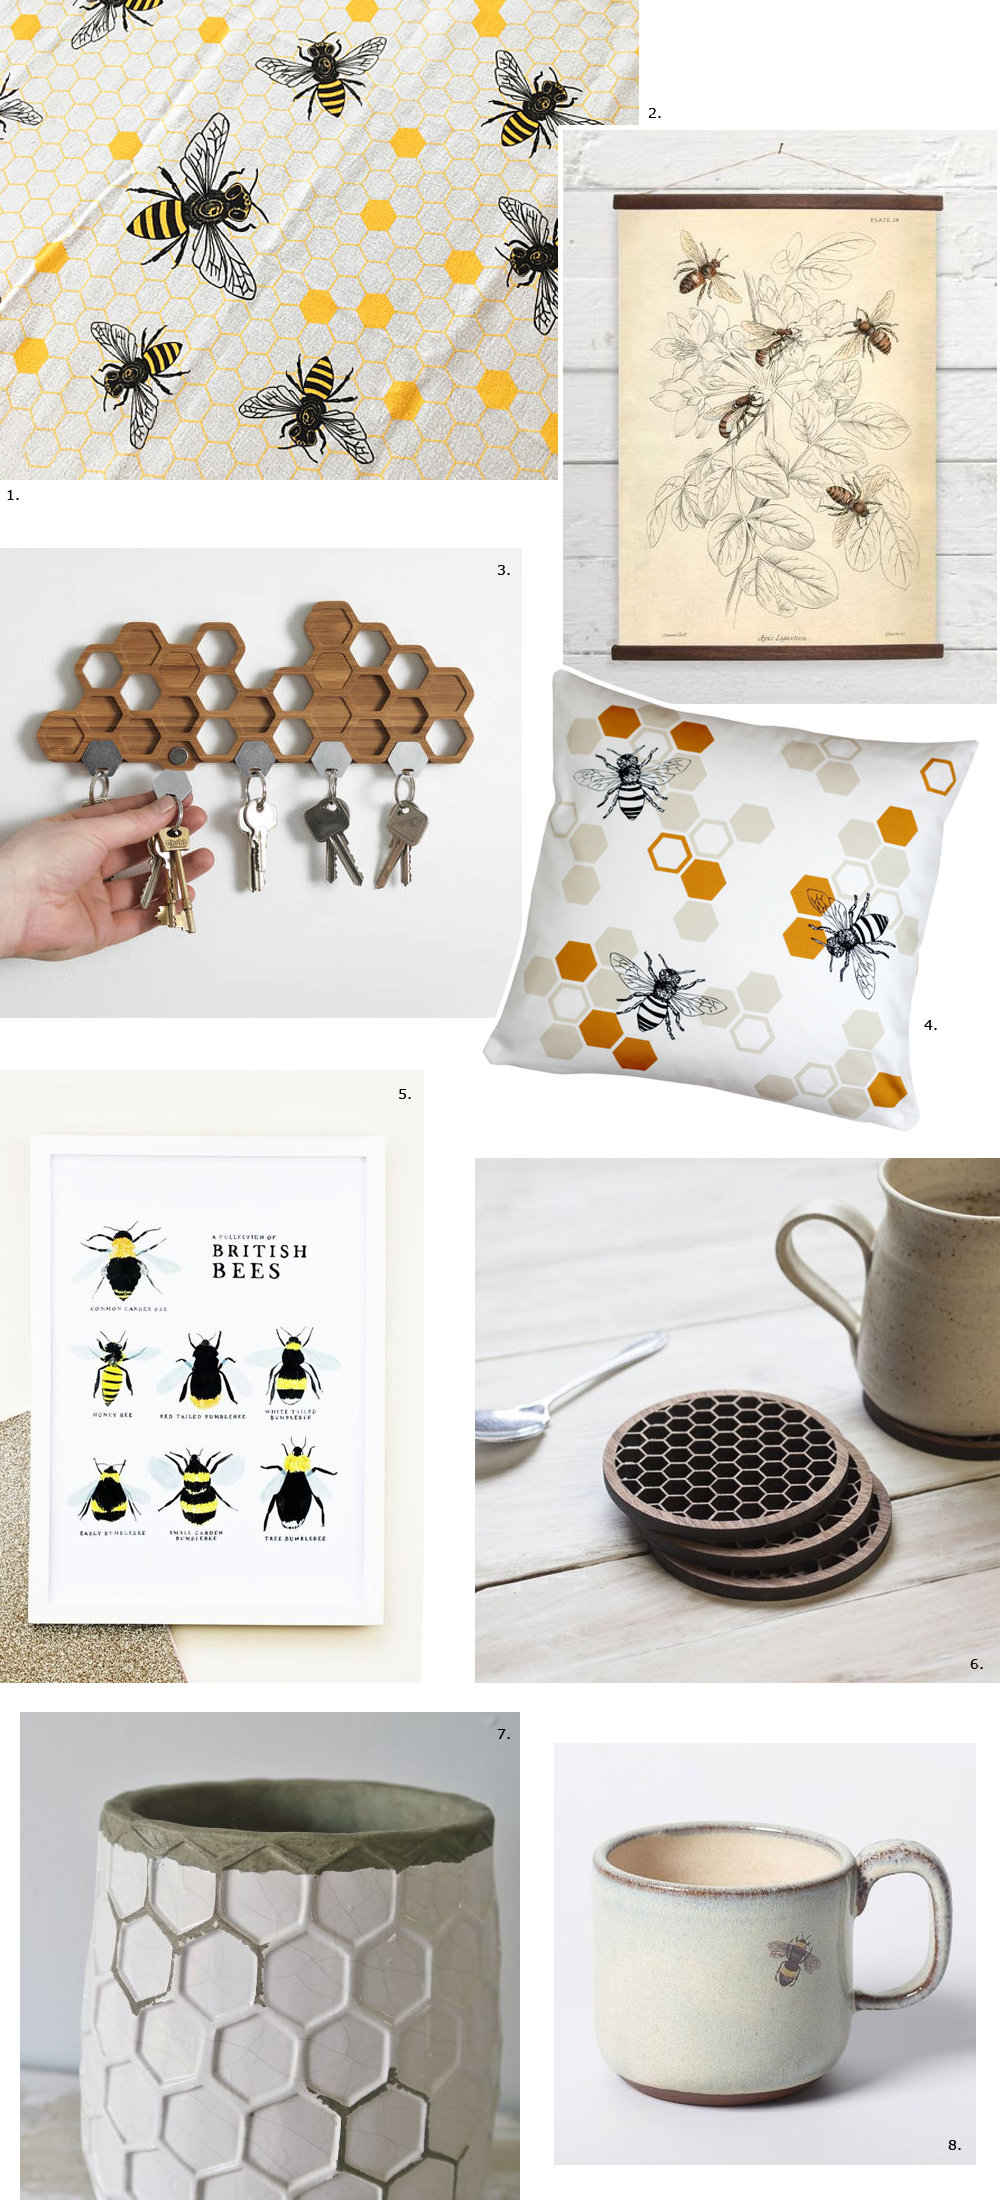 1.  Honey bee tea towel by  Noteworthy Paper Press   2.  Bees canvas poster by  Bygone Press  3. Bamboo honeycomb magnetic key holder by  BU Products  4.  Honey bee cushion by  Natalie Laura Ellen  5.  British bees illustrated digital print by  Annie Dornan Smith  6.  Walnut honeycomb drinks coasters by  Denvers Designs  7. Honeycomb vase by  Nectar and Bumble  8.  Bee mug by  Julia Smith Ceramics